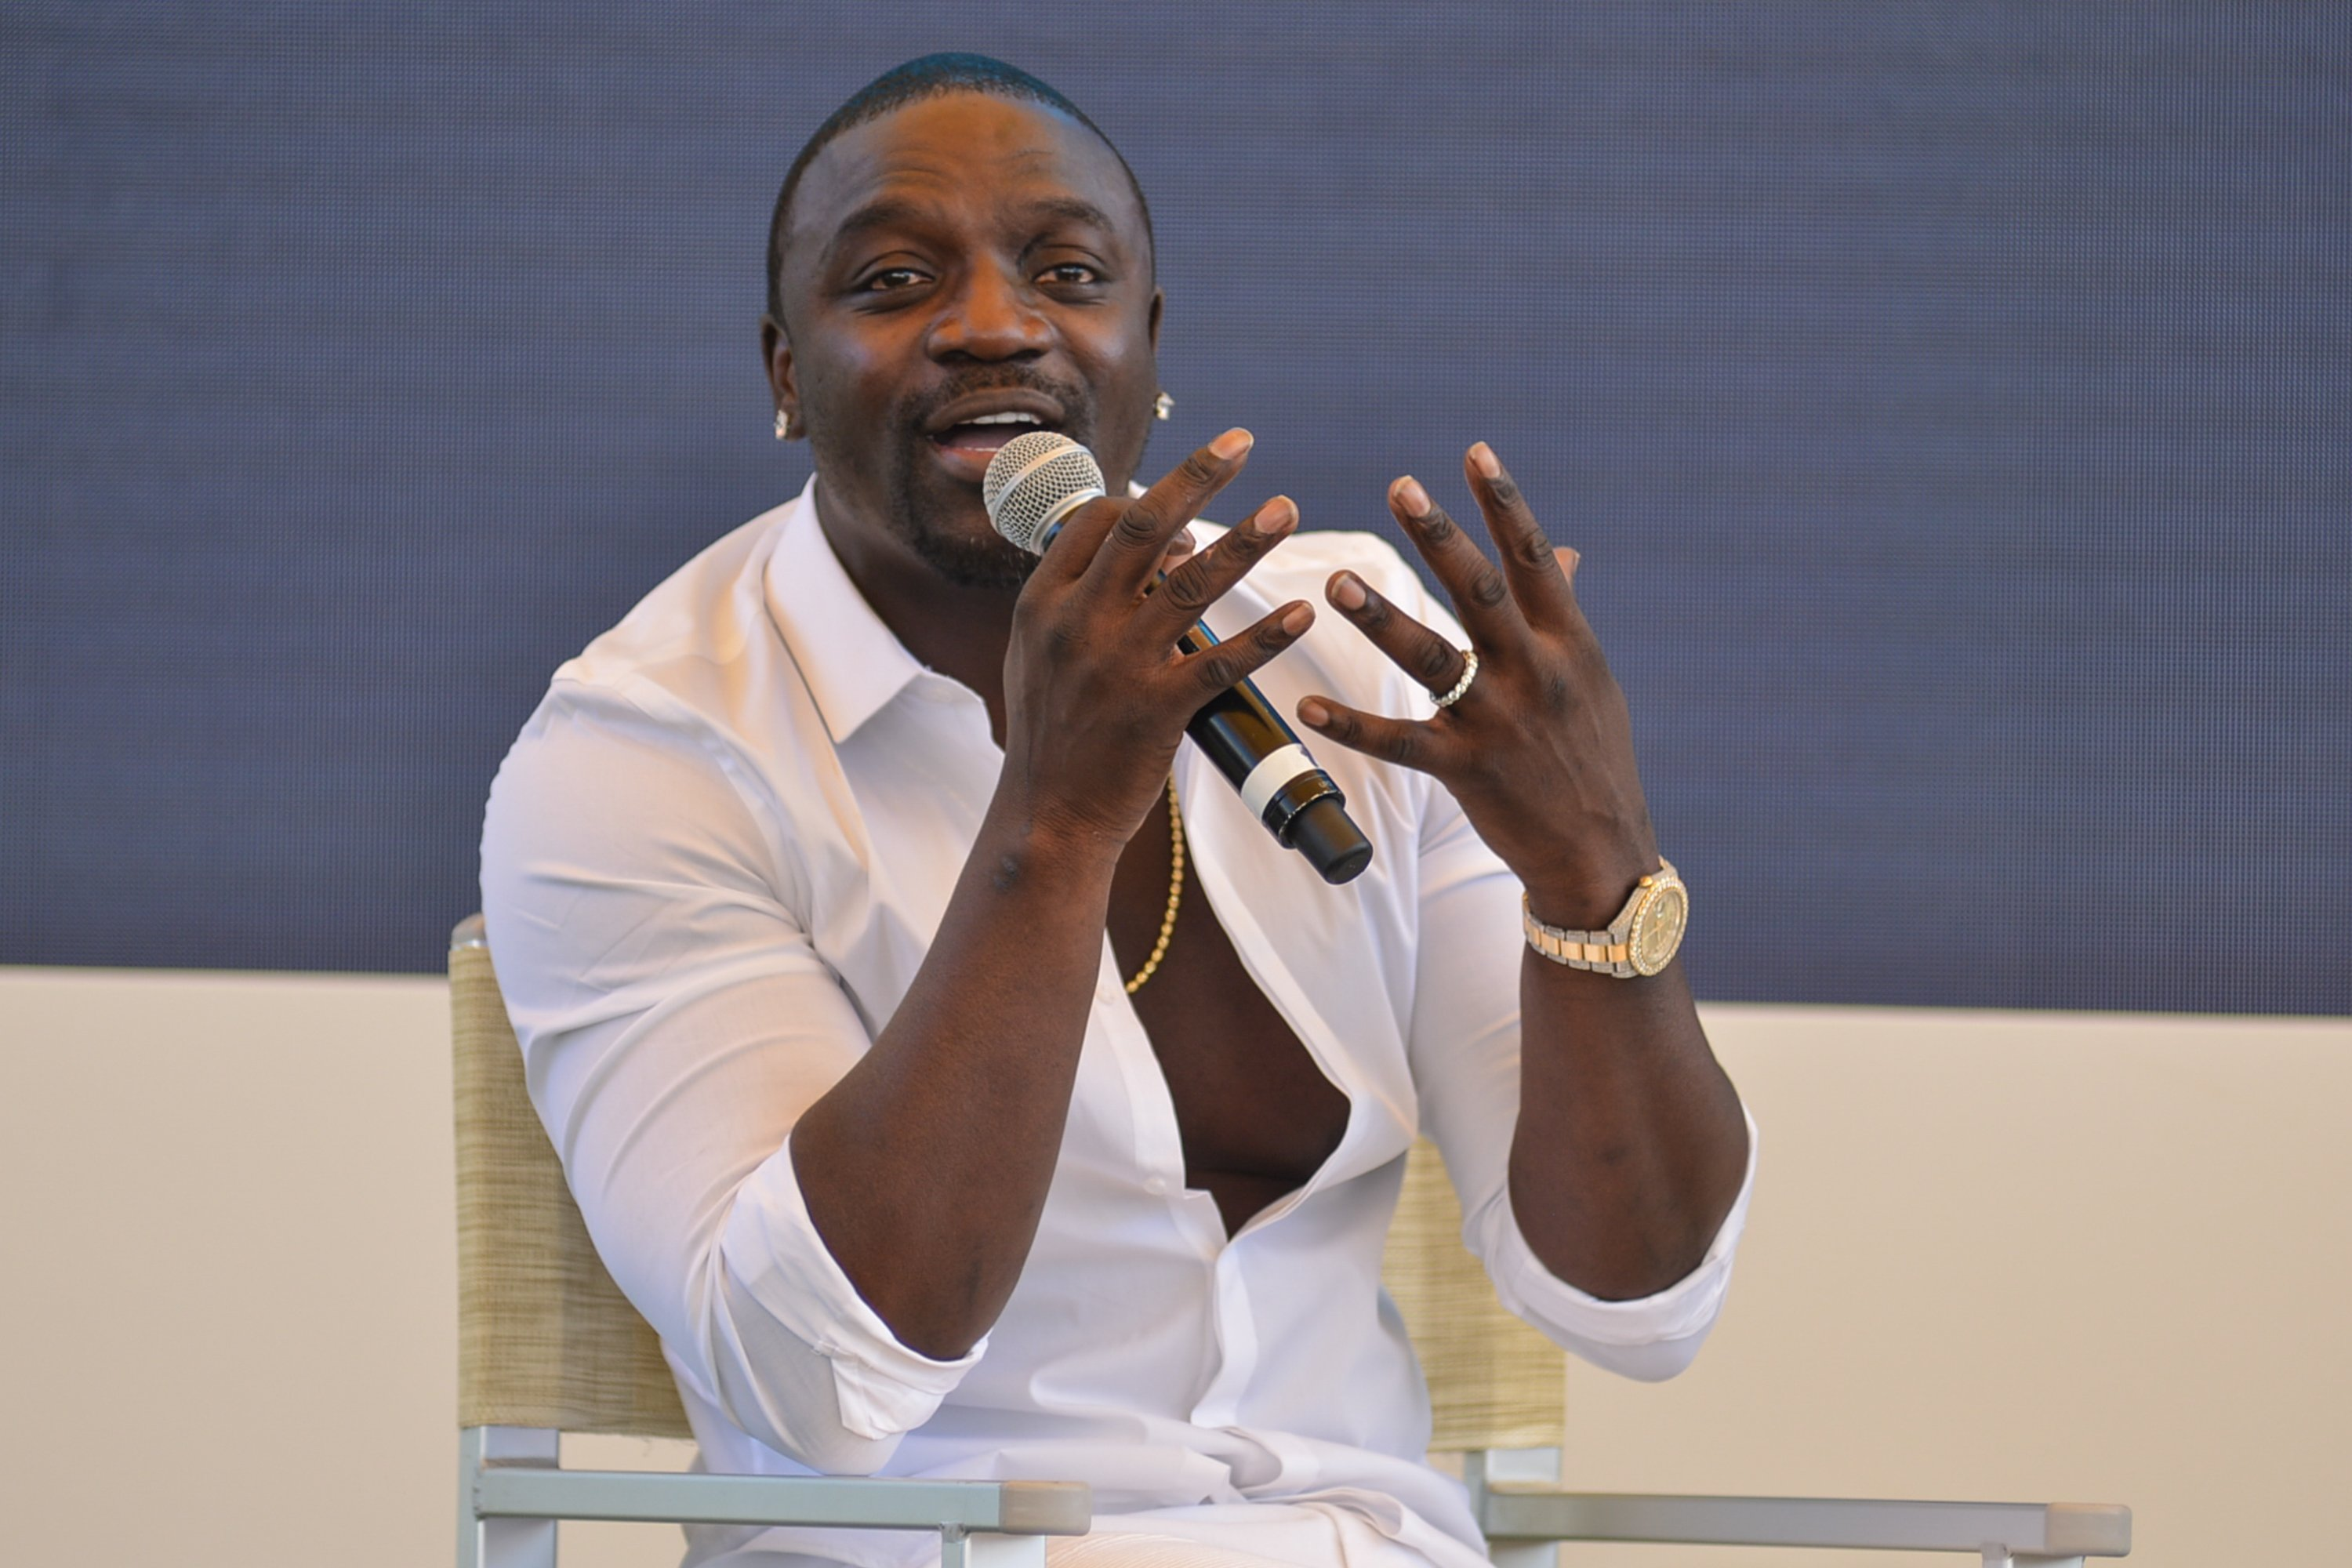 Akon attends the Cannes Lions Festival 2018 on June 19, 2018 in Cannes, France | Photo: Getty Images